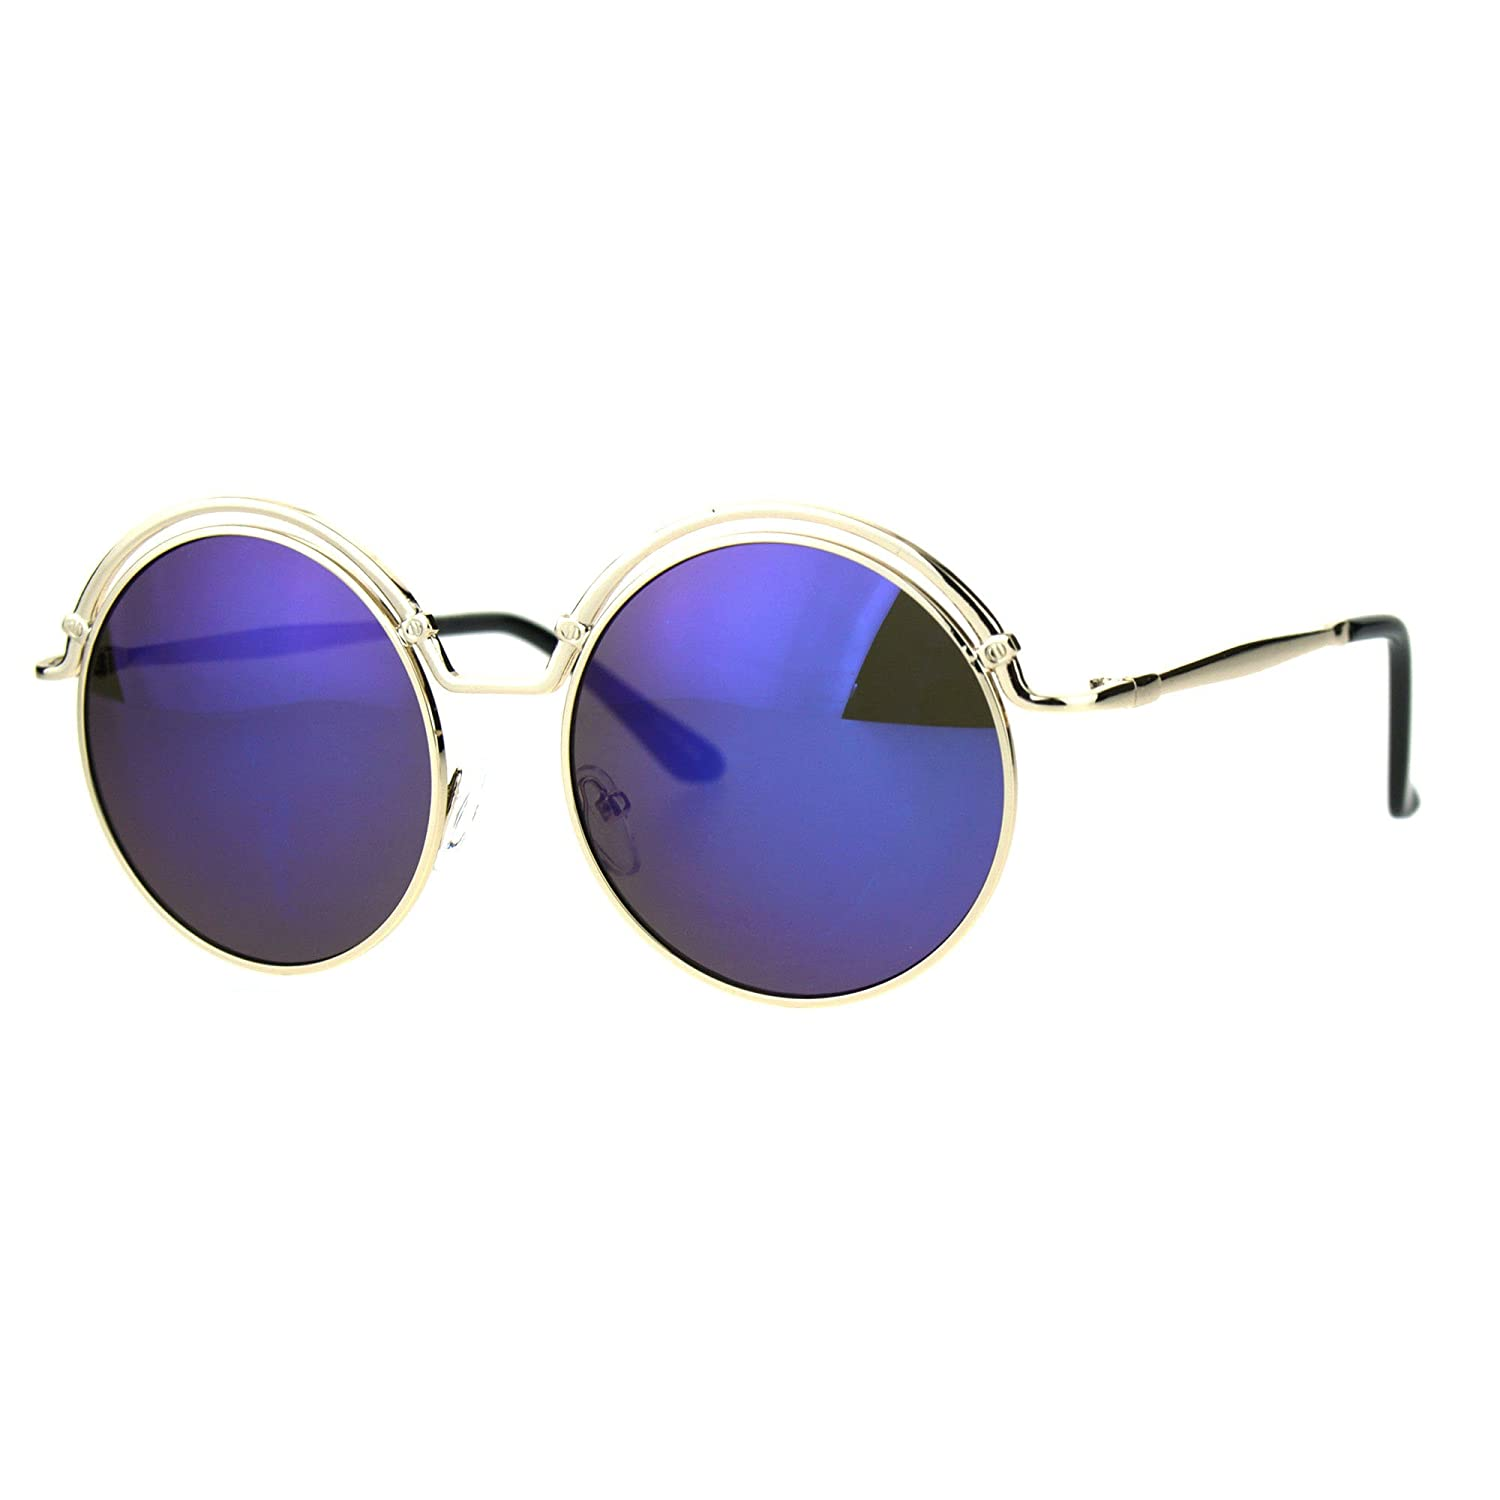 3e875052fcca Amazon.com  Round Circle Sunglasses Womens Metal Double Top Frame Gold